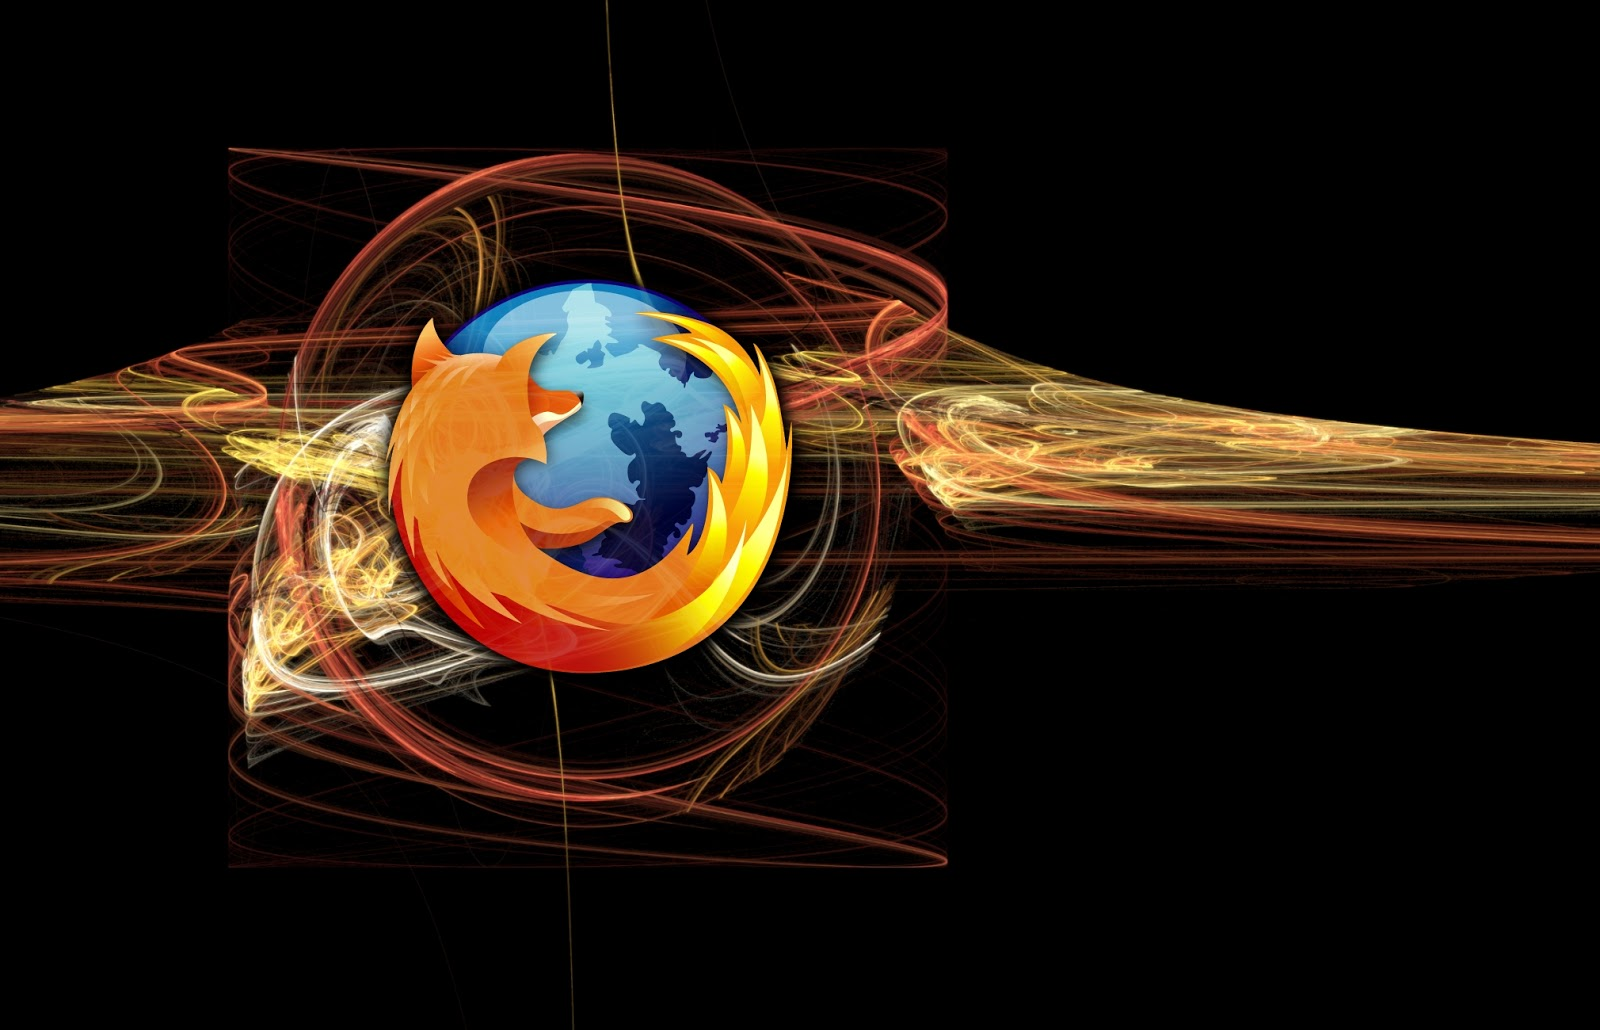 <b>Mozilla Firefox</b> Wallpaper - WallpaperSafari